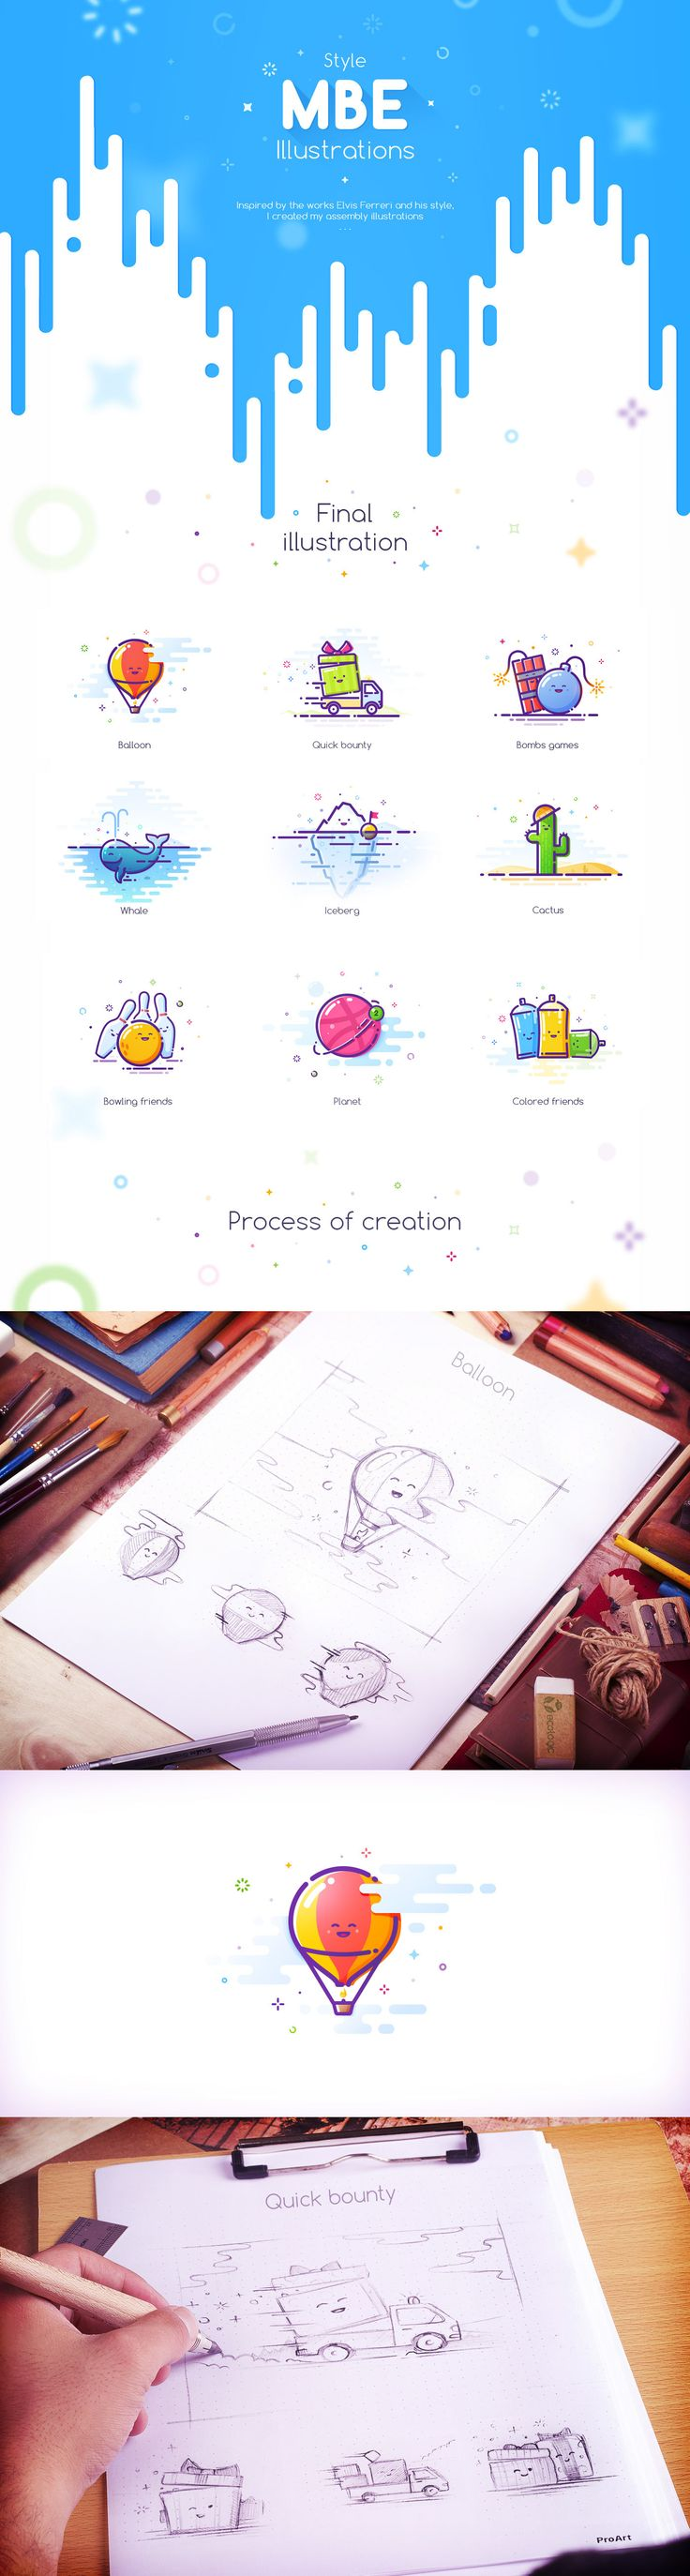 MBE Style Illustration process on Behance